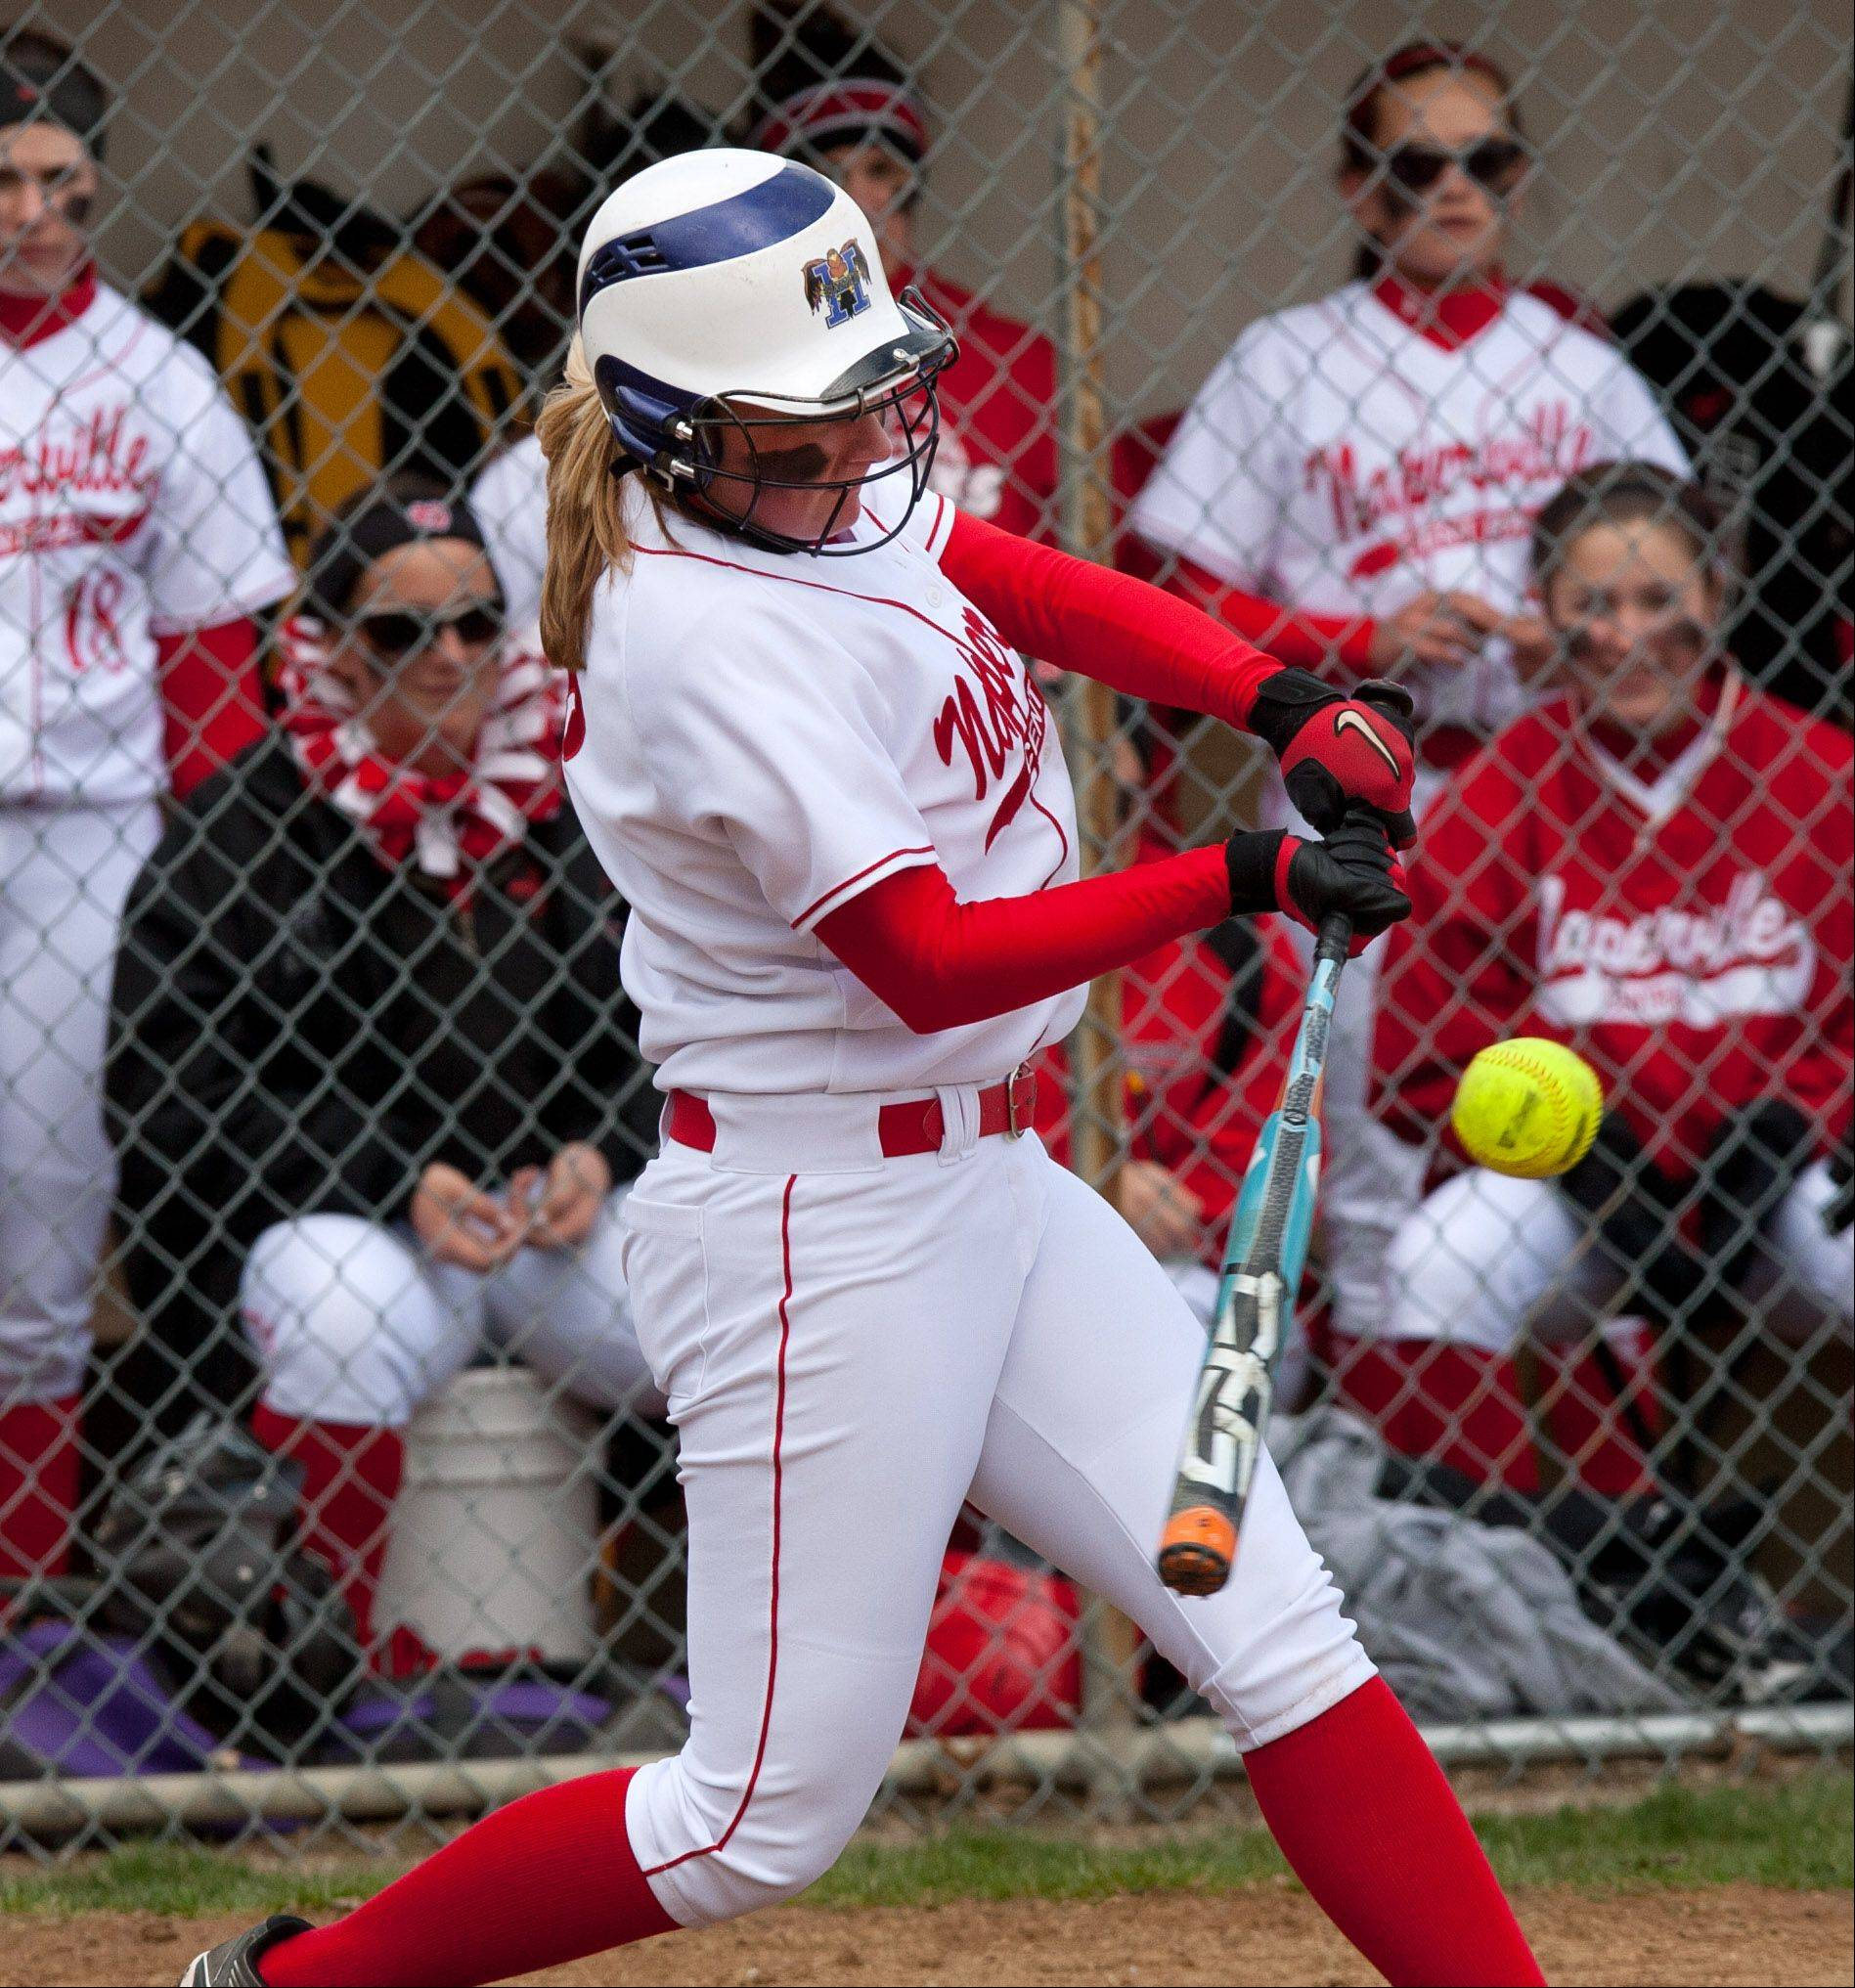 Naperville Central's Megan Nerger doubles home a run against Neuqua Valley during girls softball action.